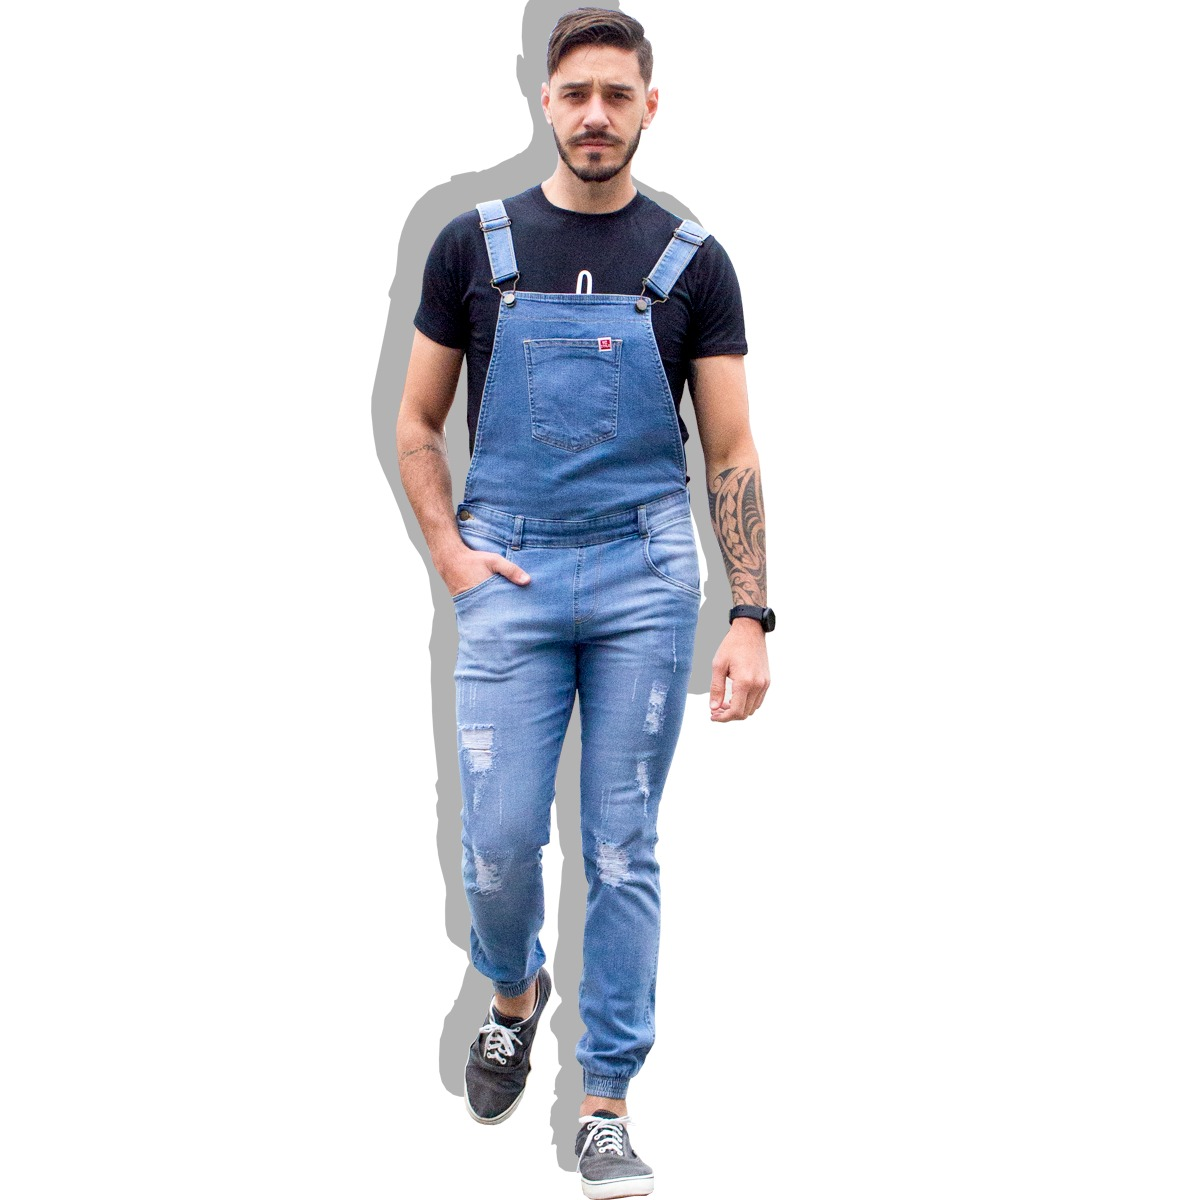 MACACAO JEANS LONGO - M03